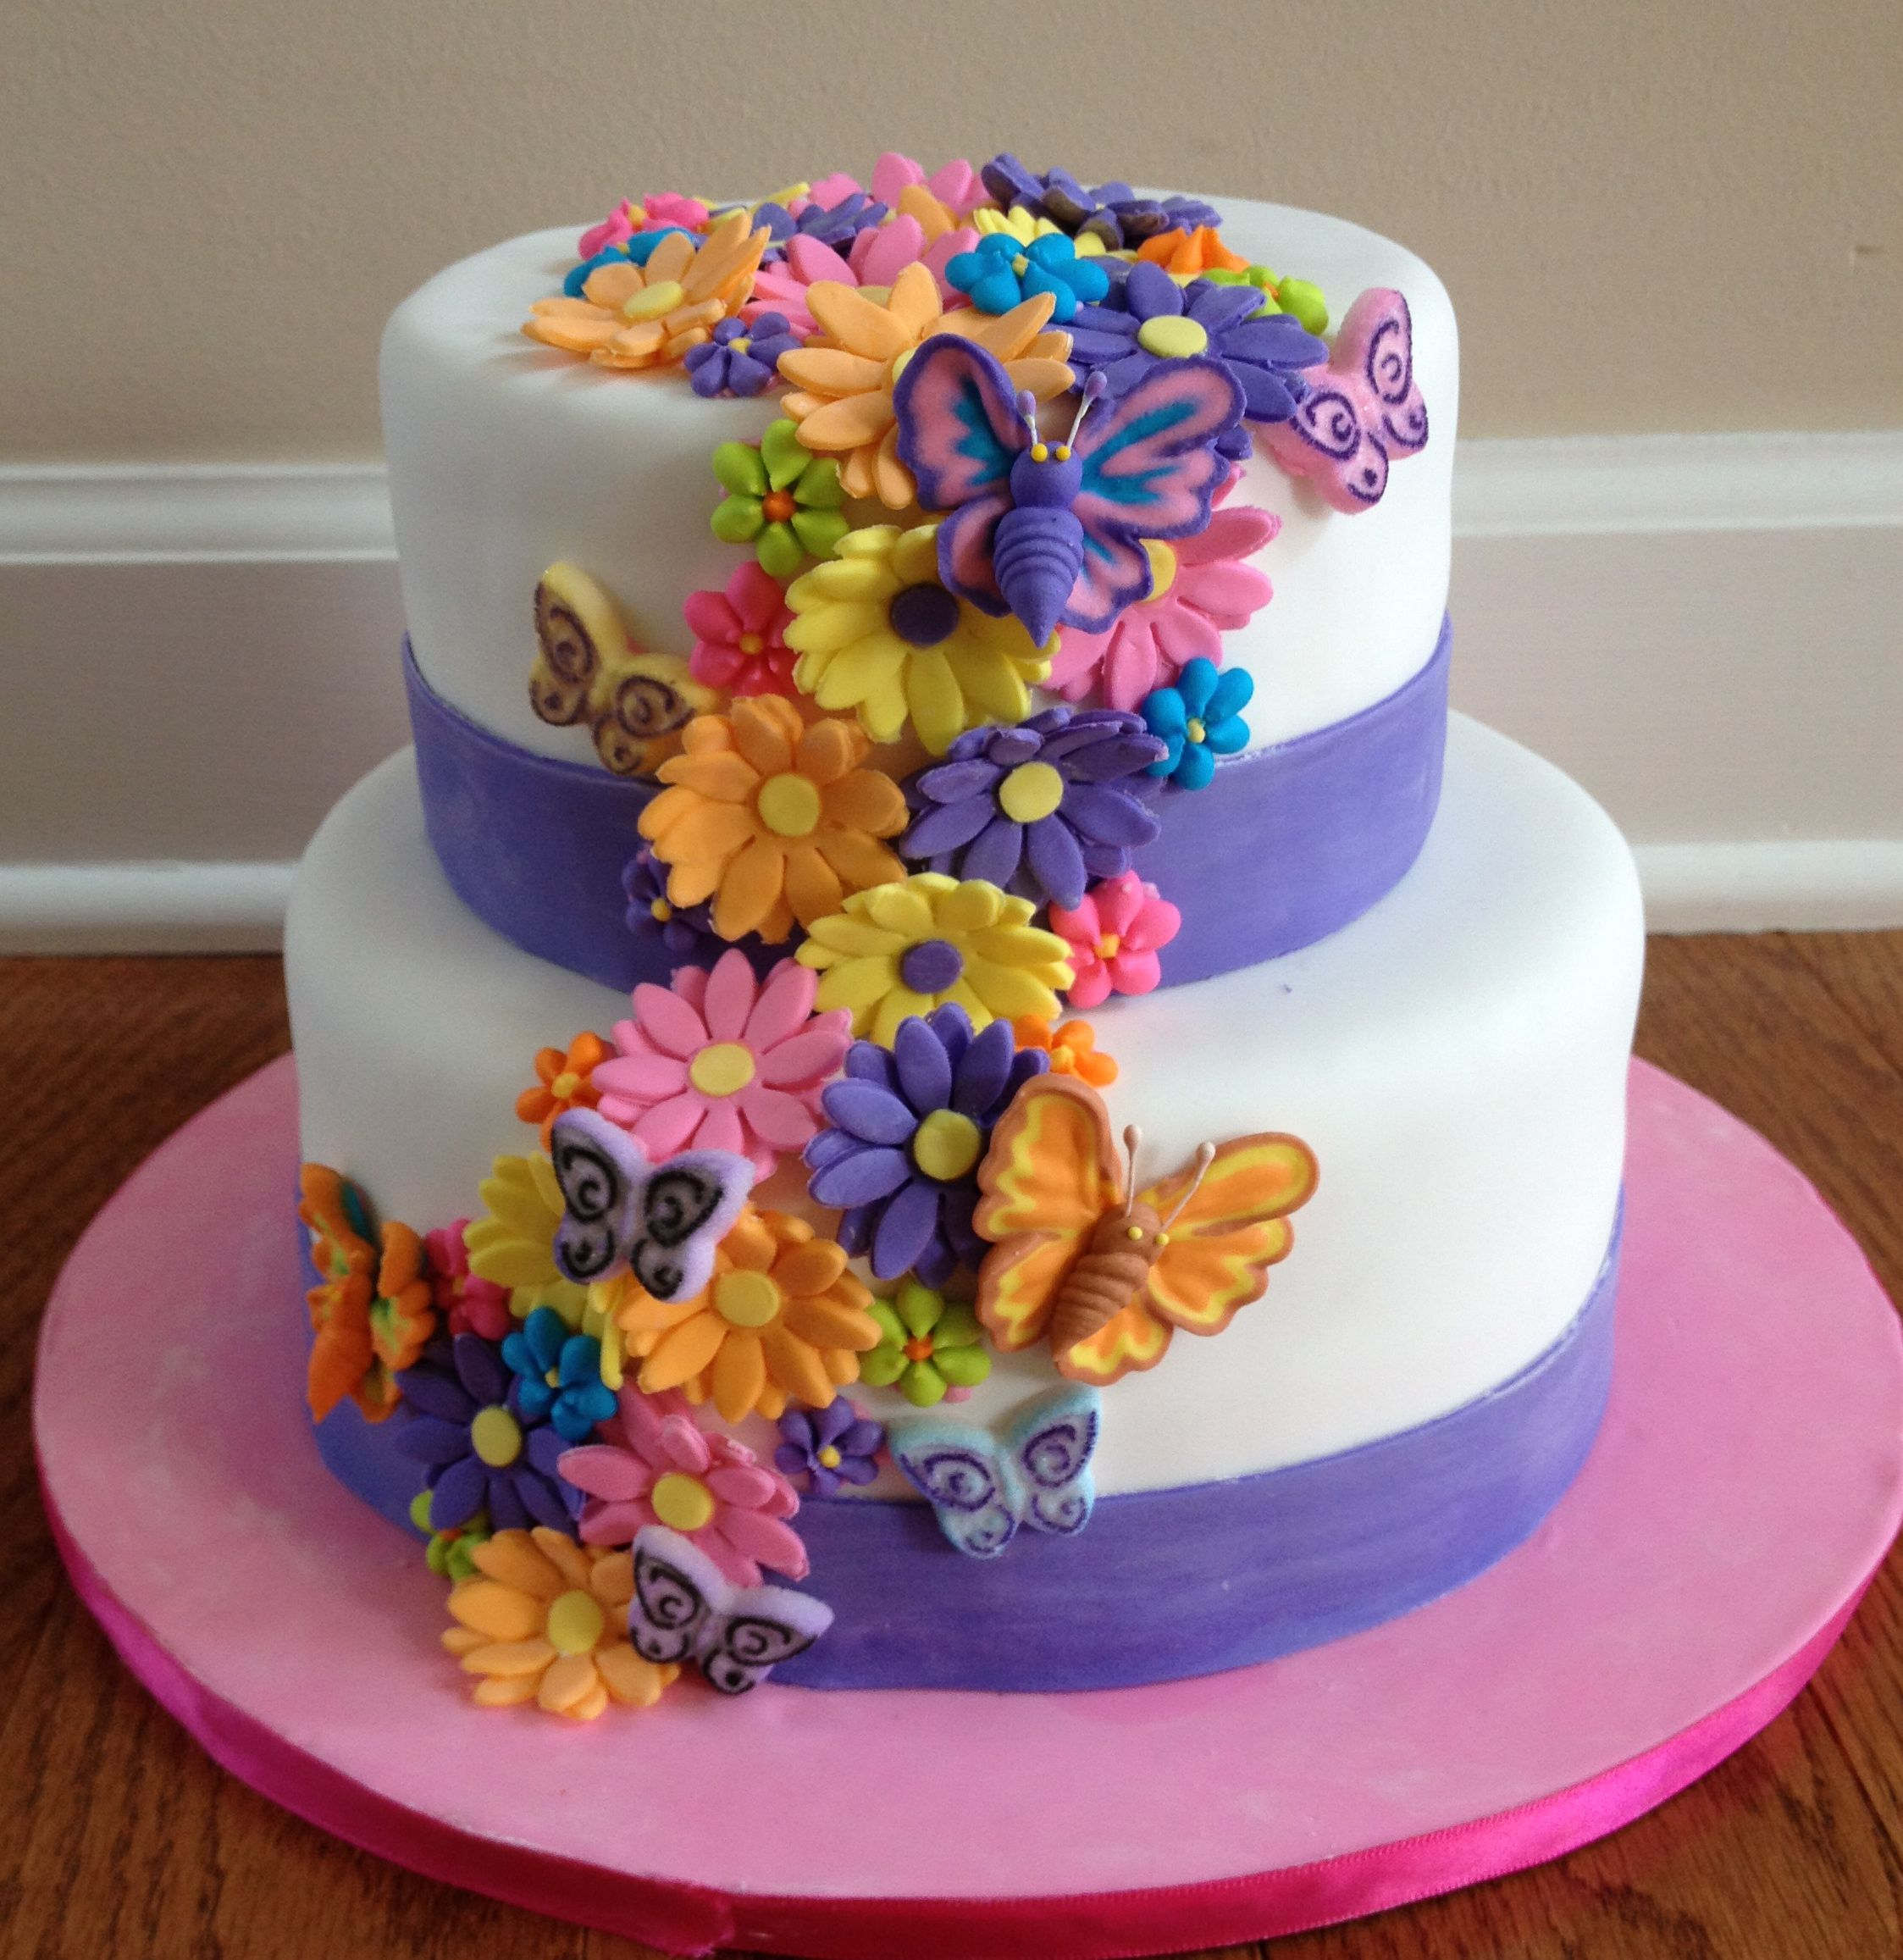 Szletsnapi kpeslapok flower birthday cakes photo picture in birthday cake dhlflorist Choice Image